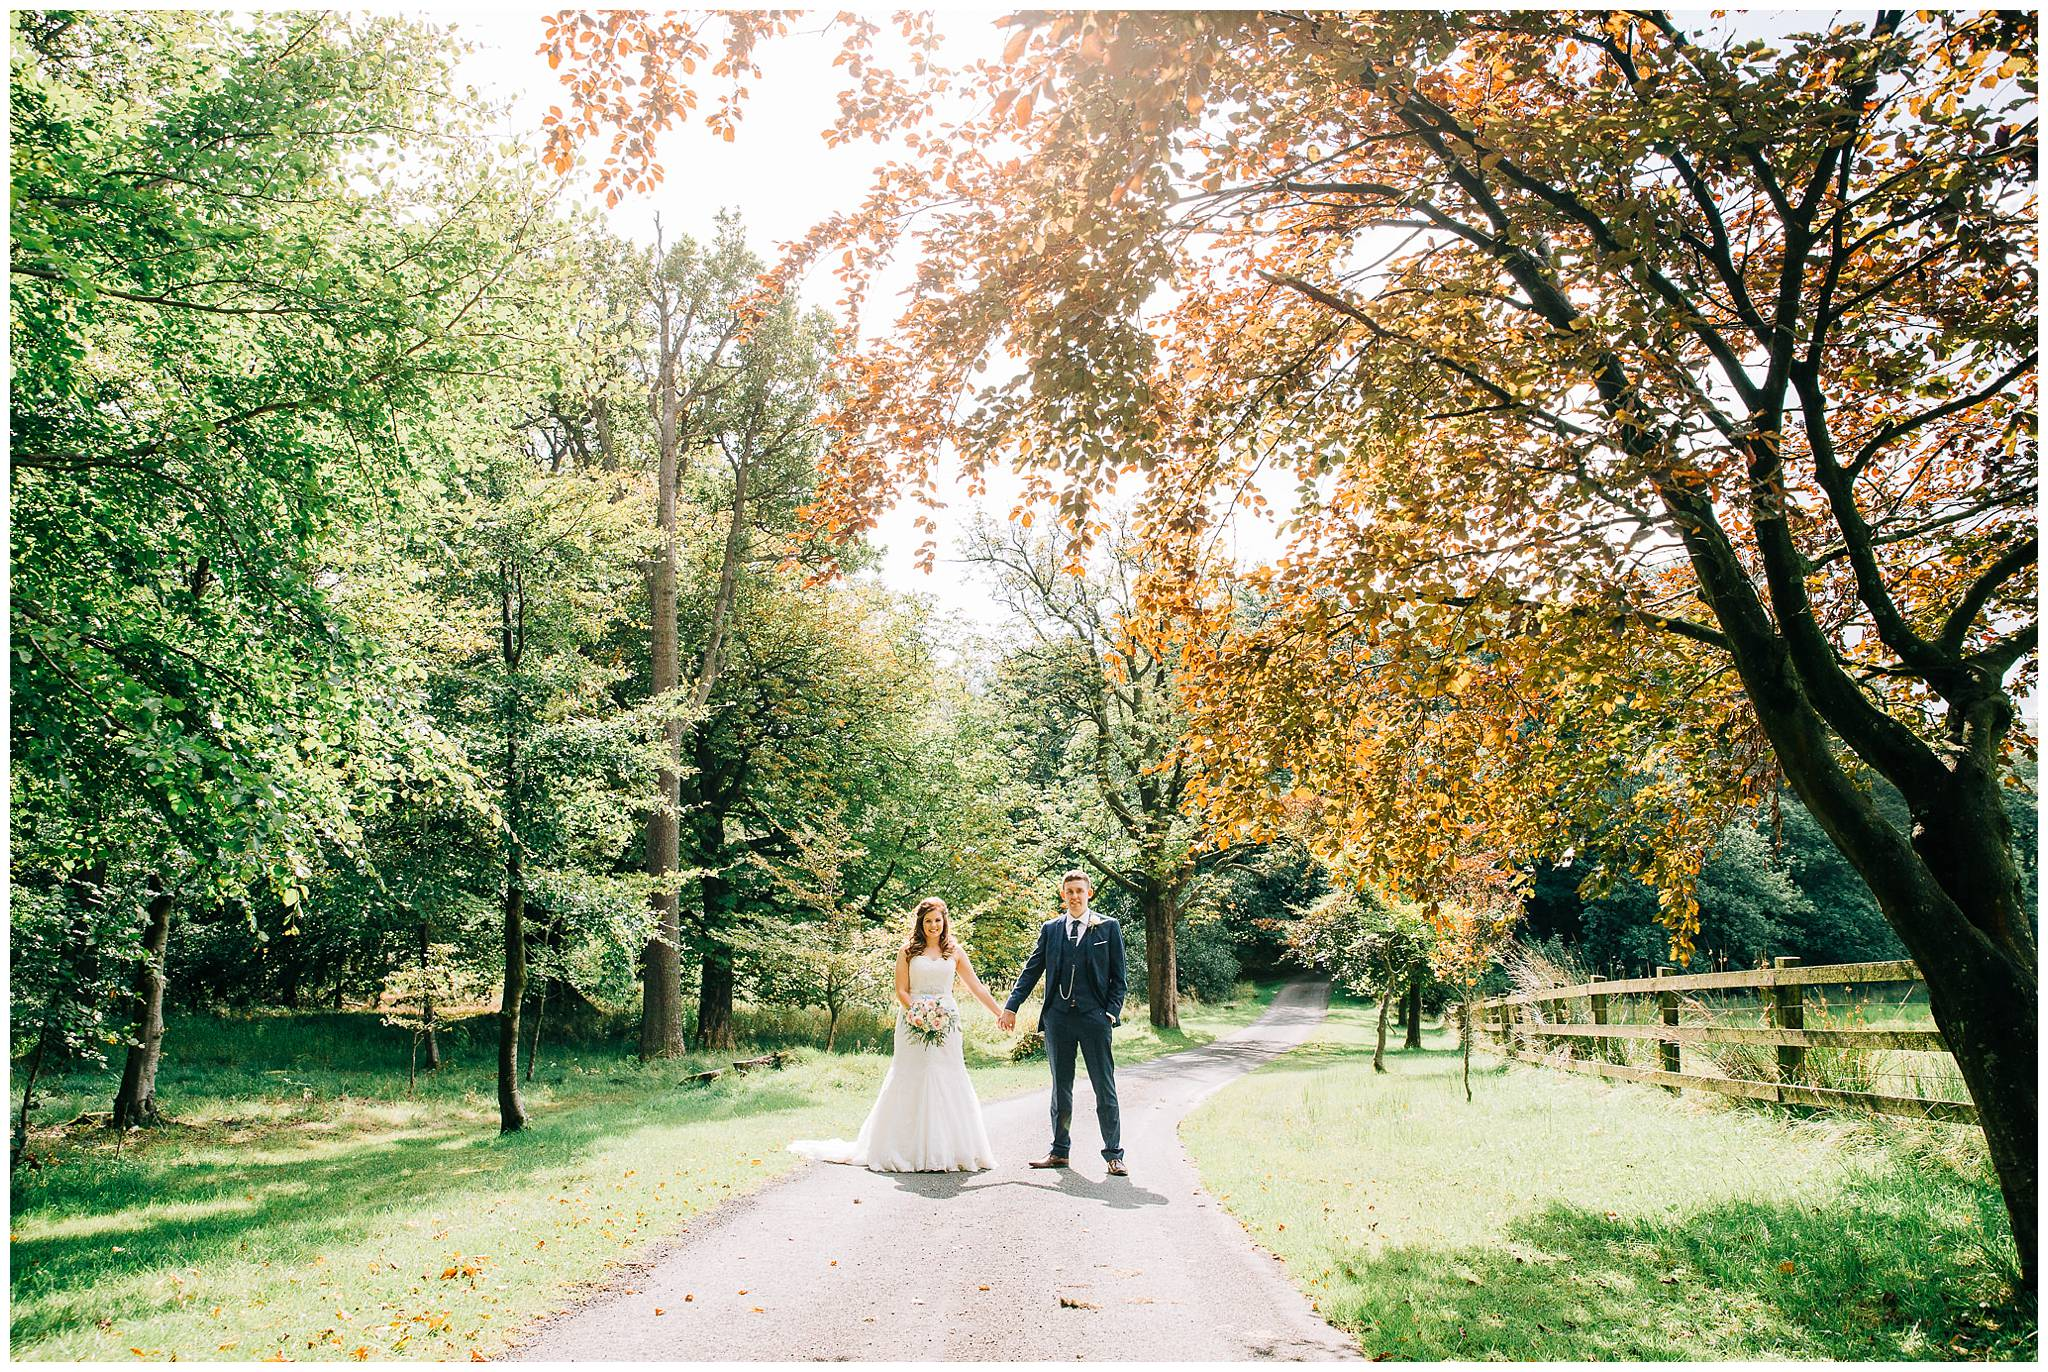 bride and groom stood in the middle of small rural road surround by grass and trees in the summer sunshine